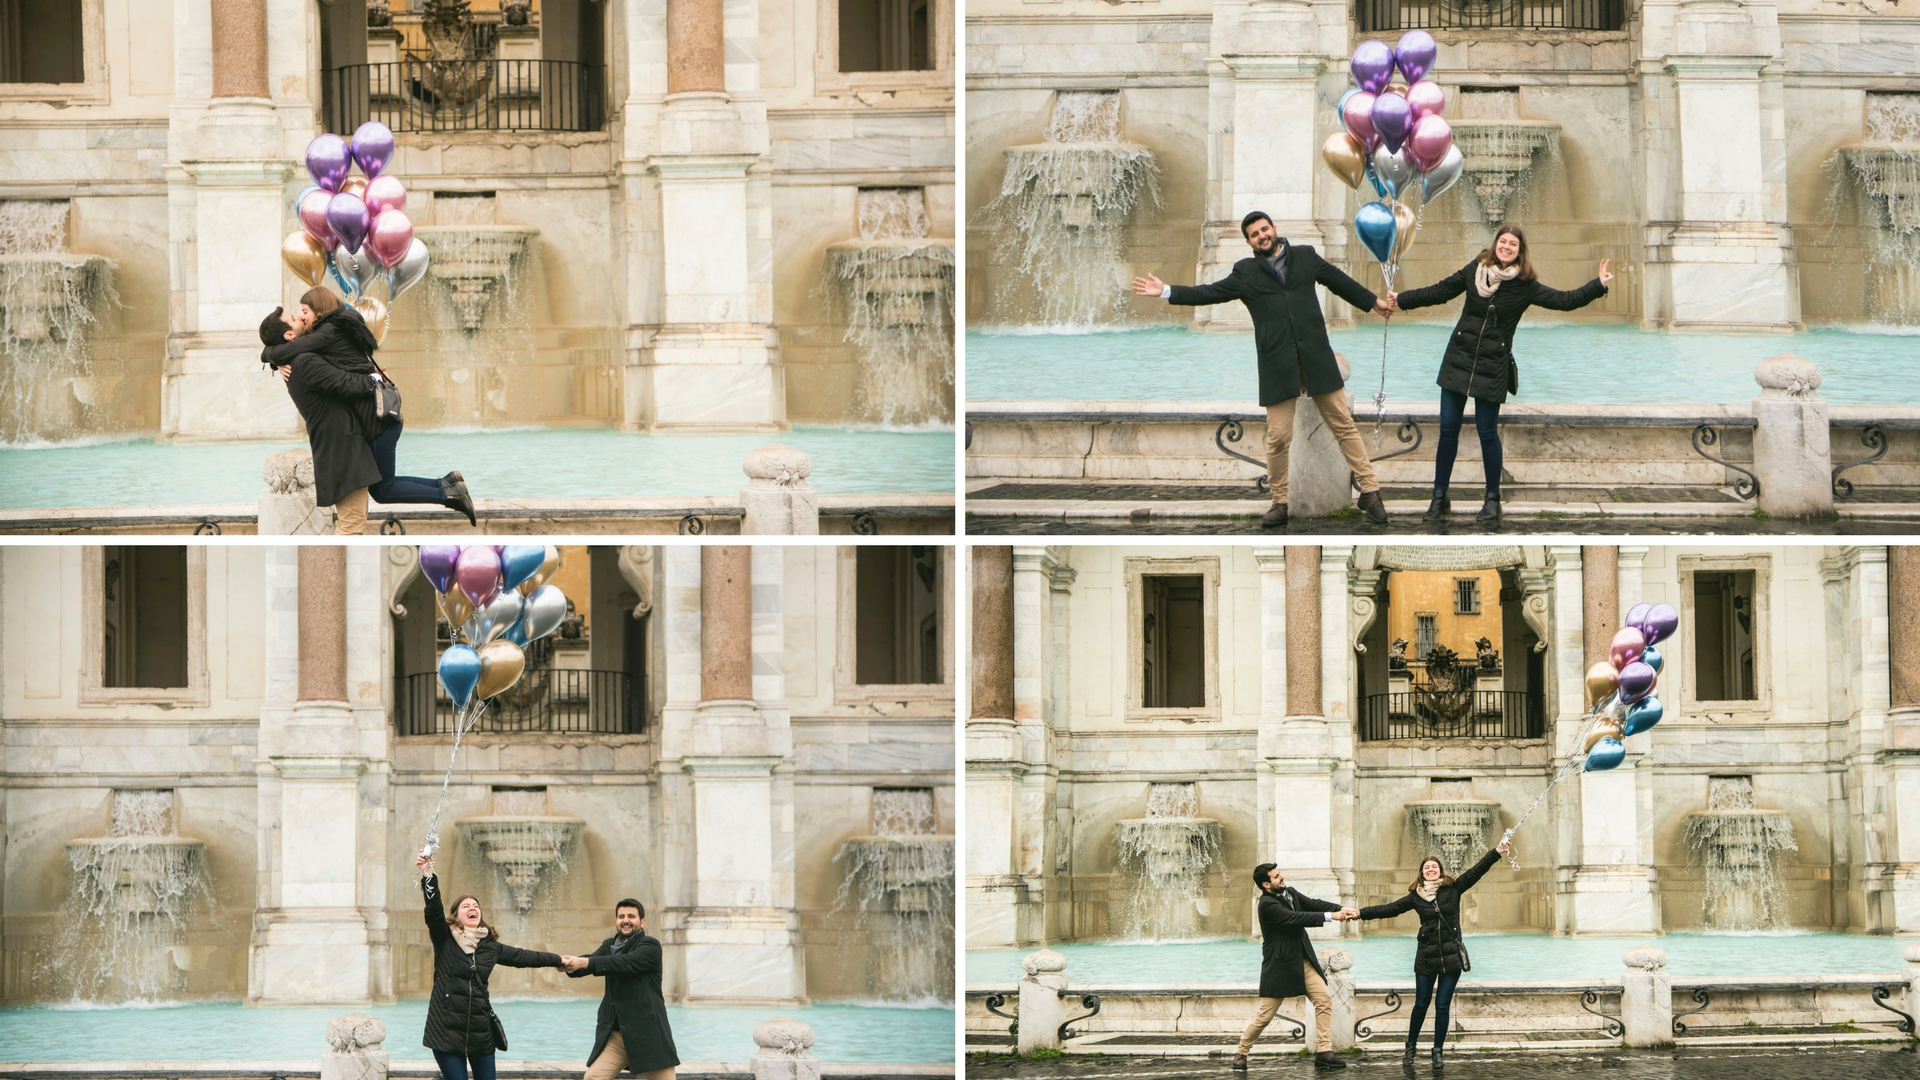 Balloons engagement photo shoot Rome